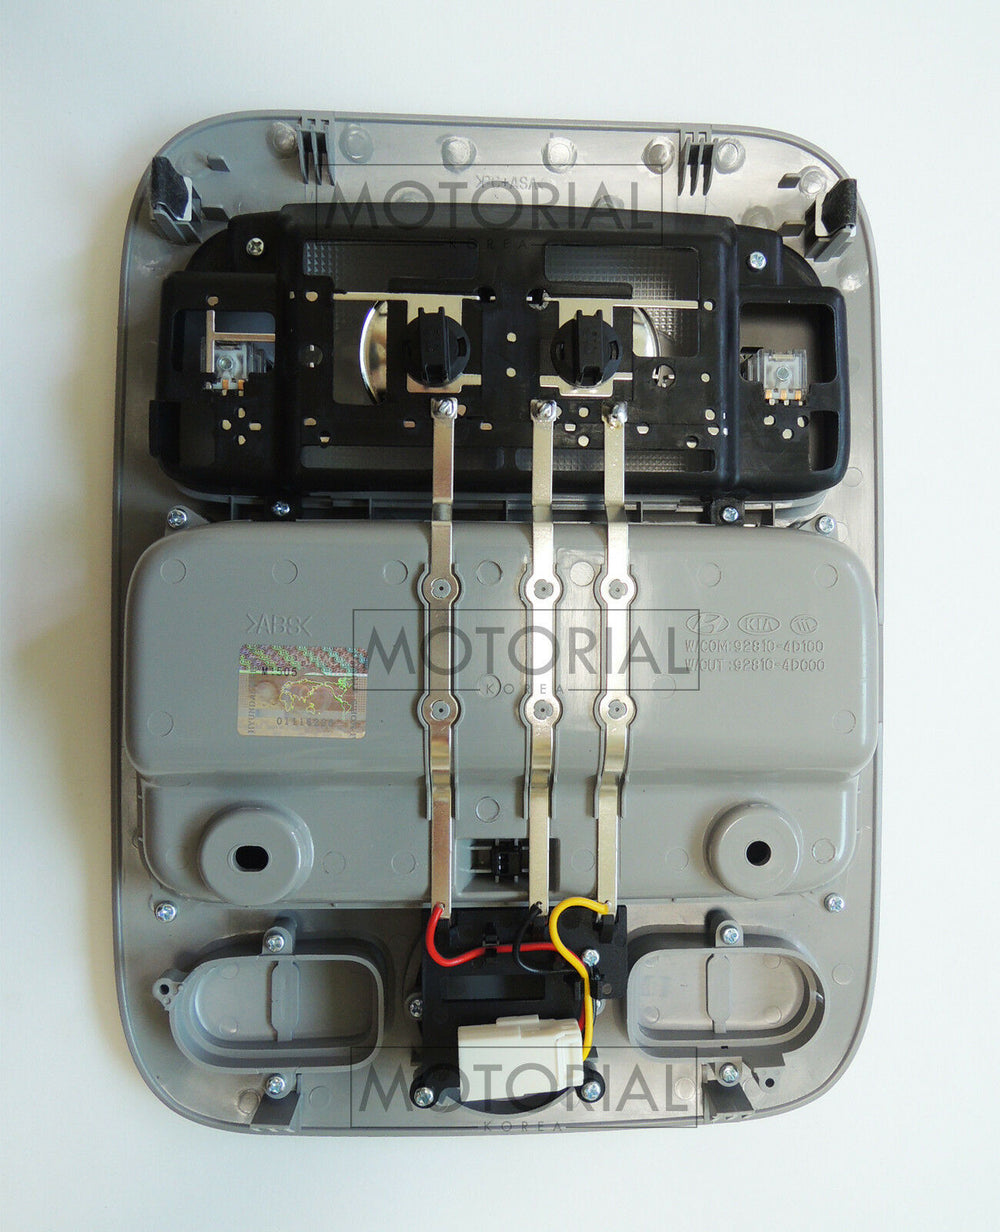 Genuine OEM Lamp Assy-Overhead Console No Trip For HYUNDAI ENTOURAGE 2006-2010 #928104D000QW